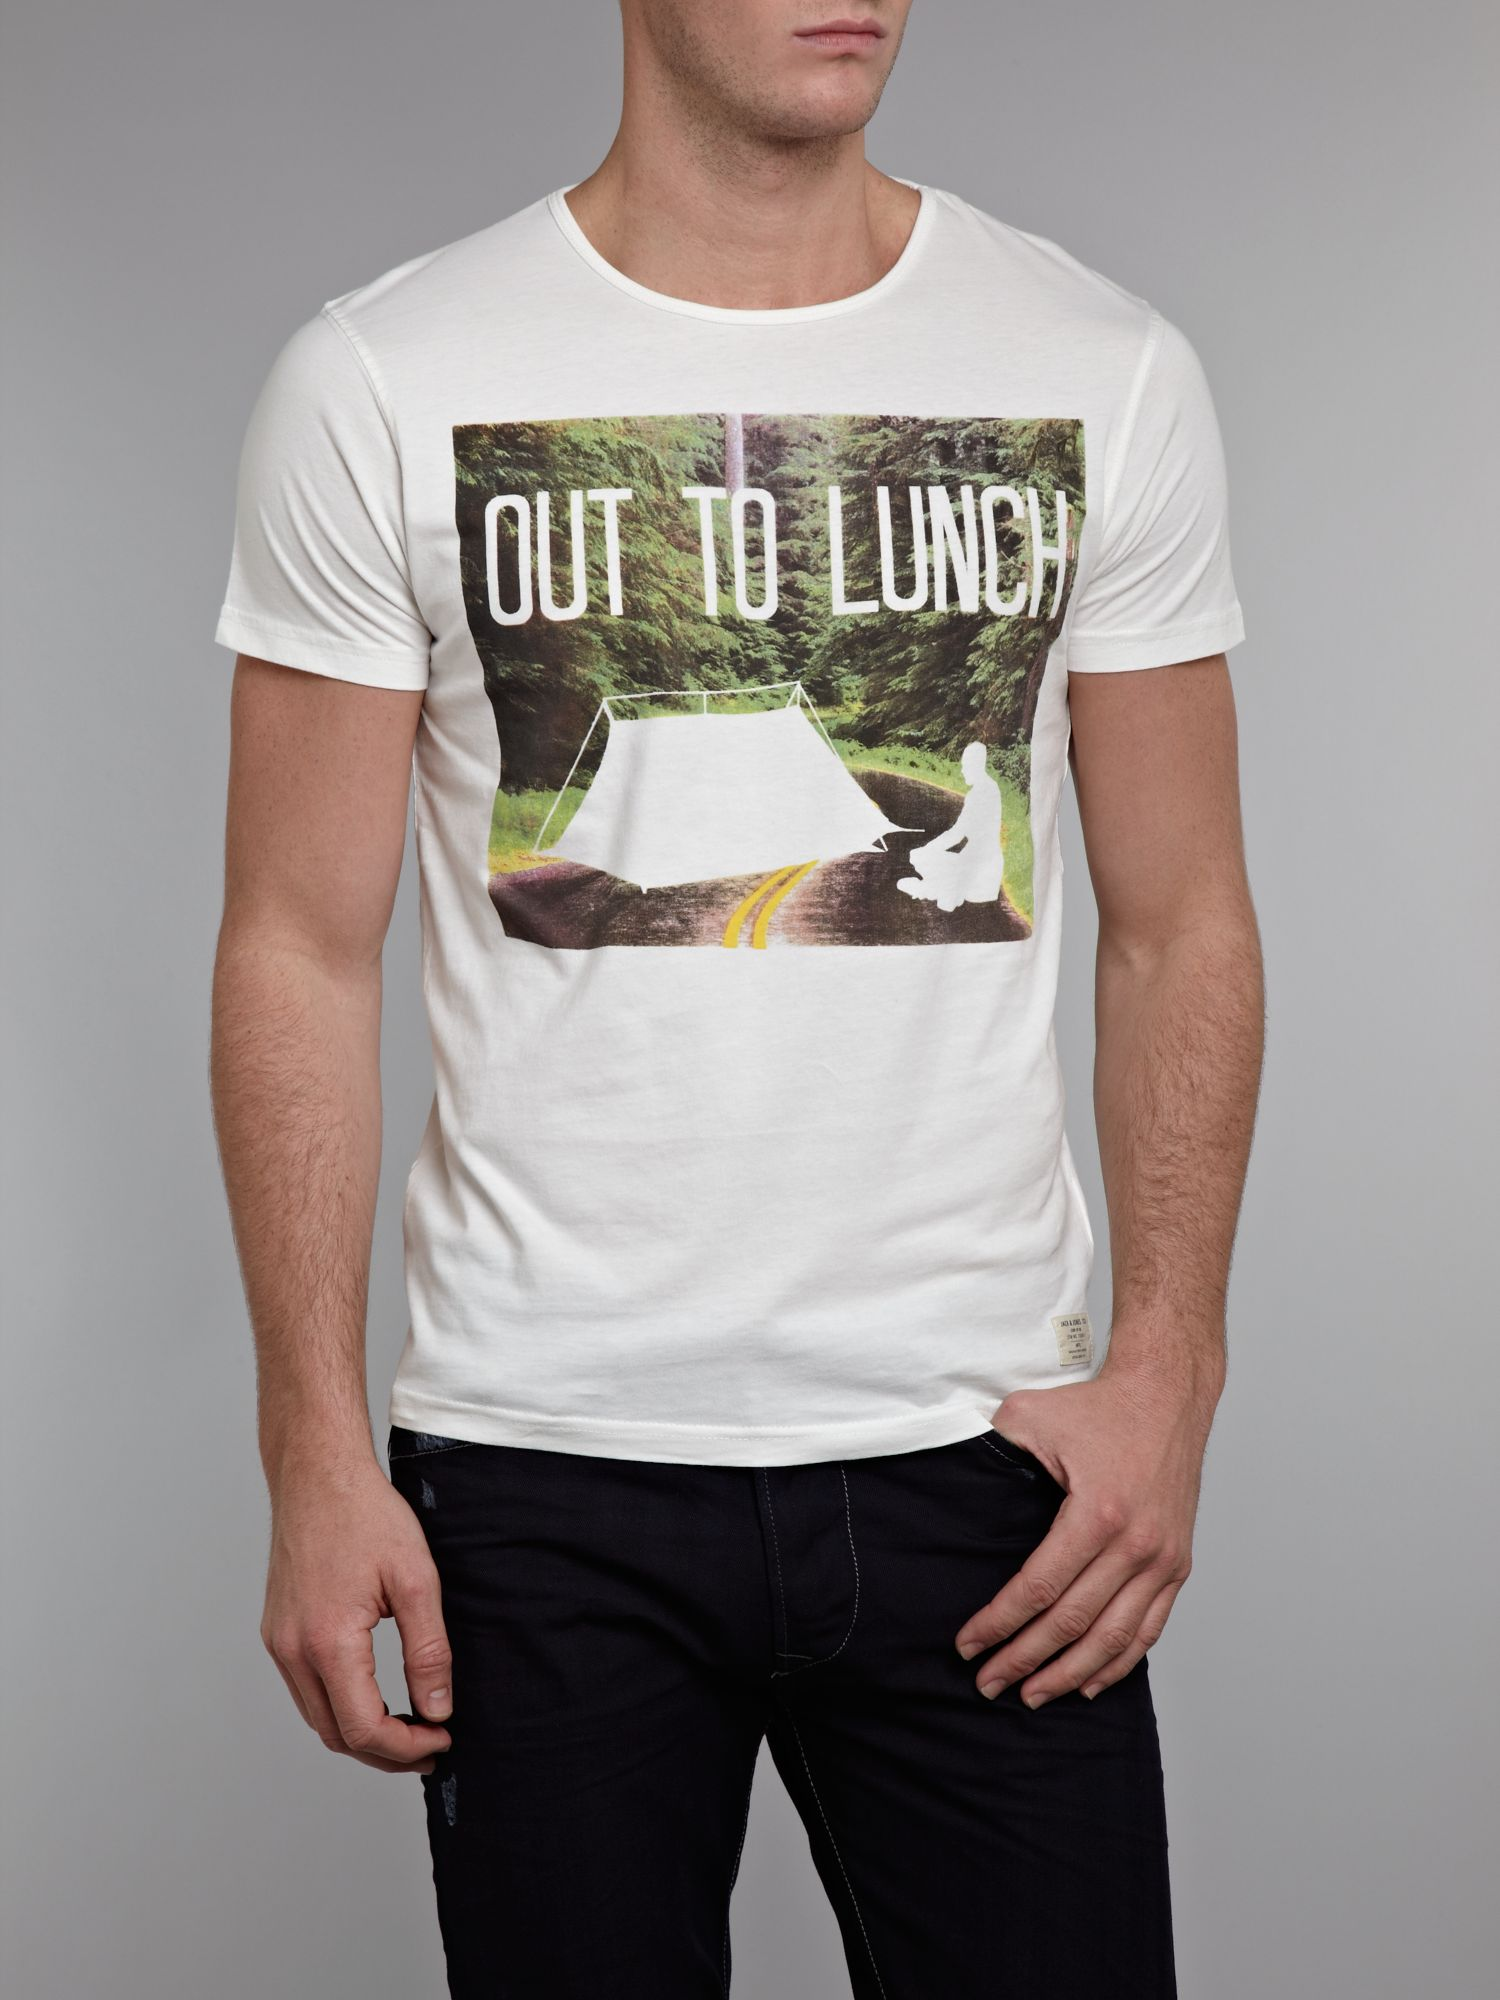 Short sleeved `out to lunch` graphic T-shirt